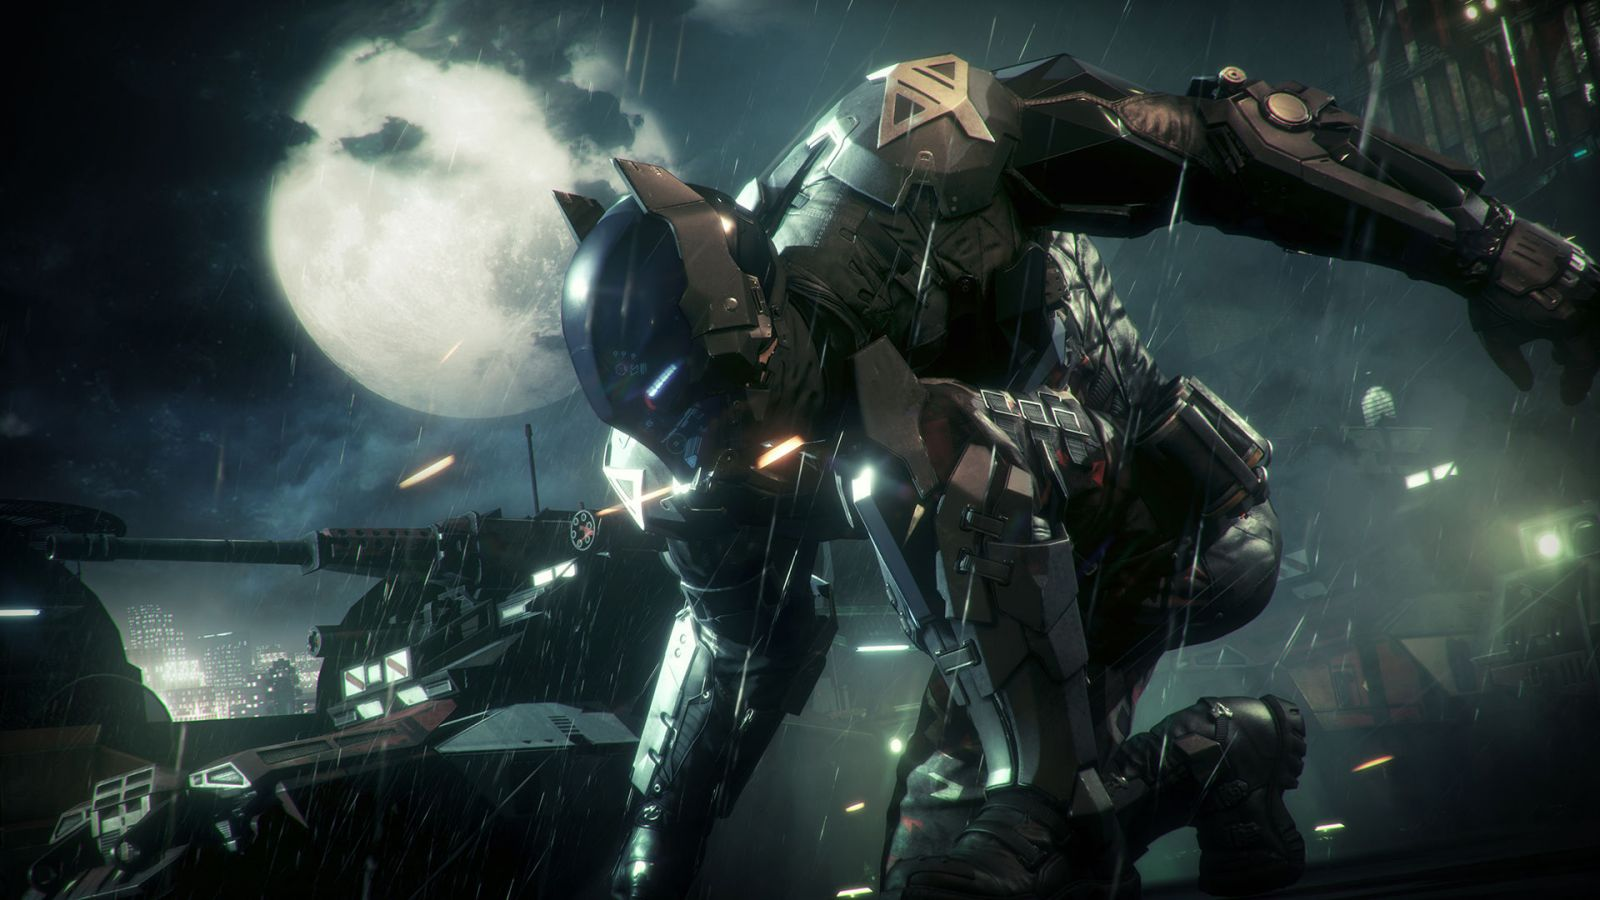 Spoiler alert dropped for Batman: Arkham Knight Limited Edition